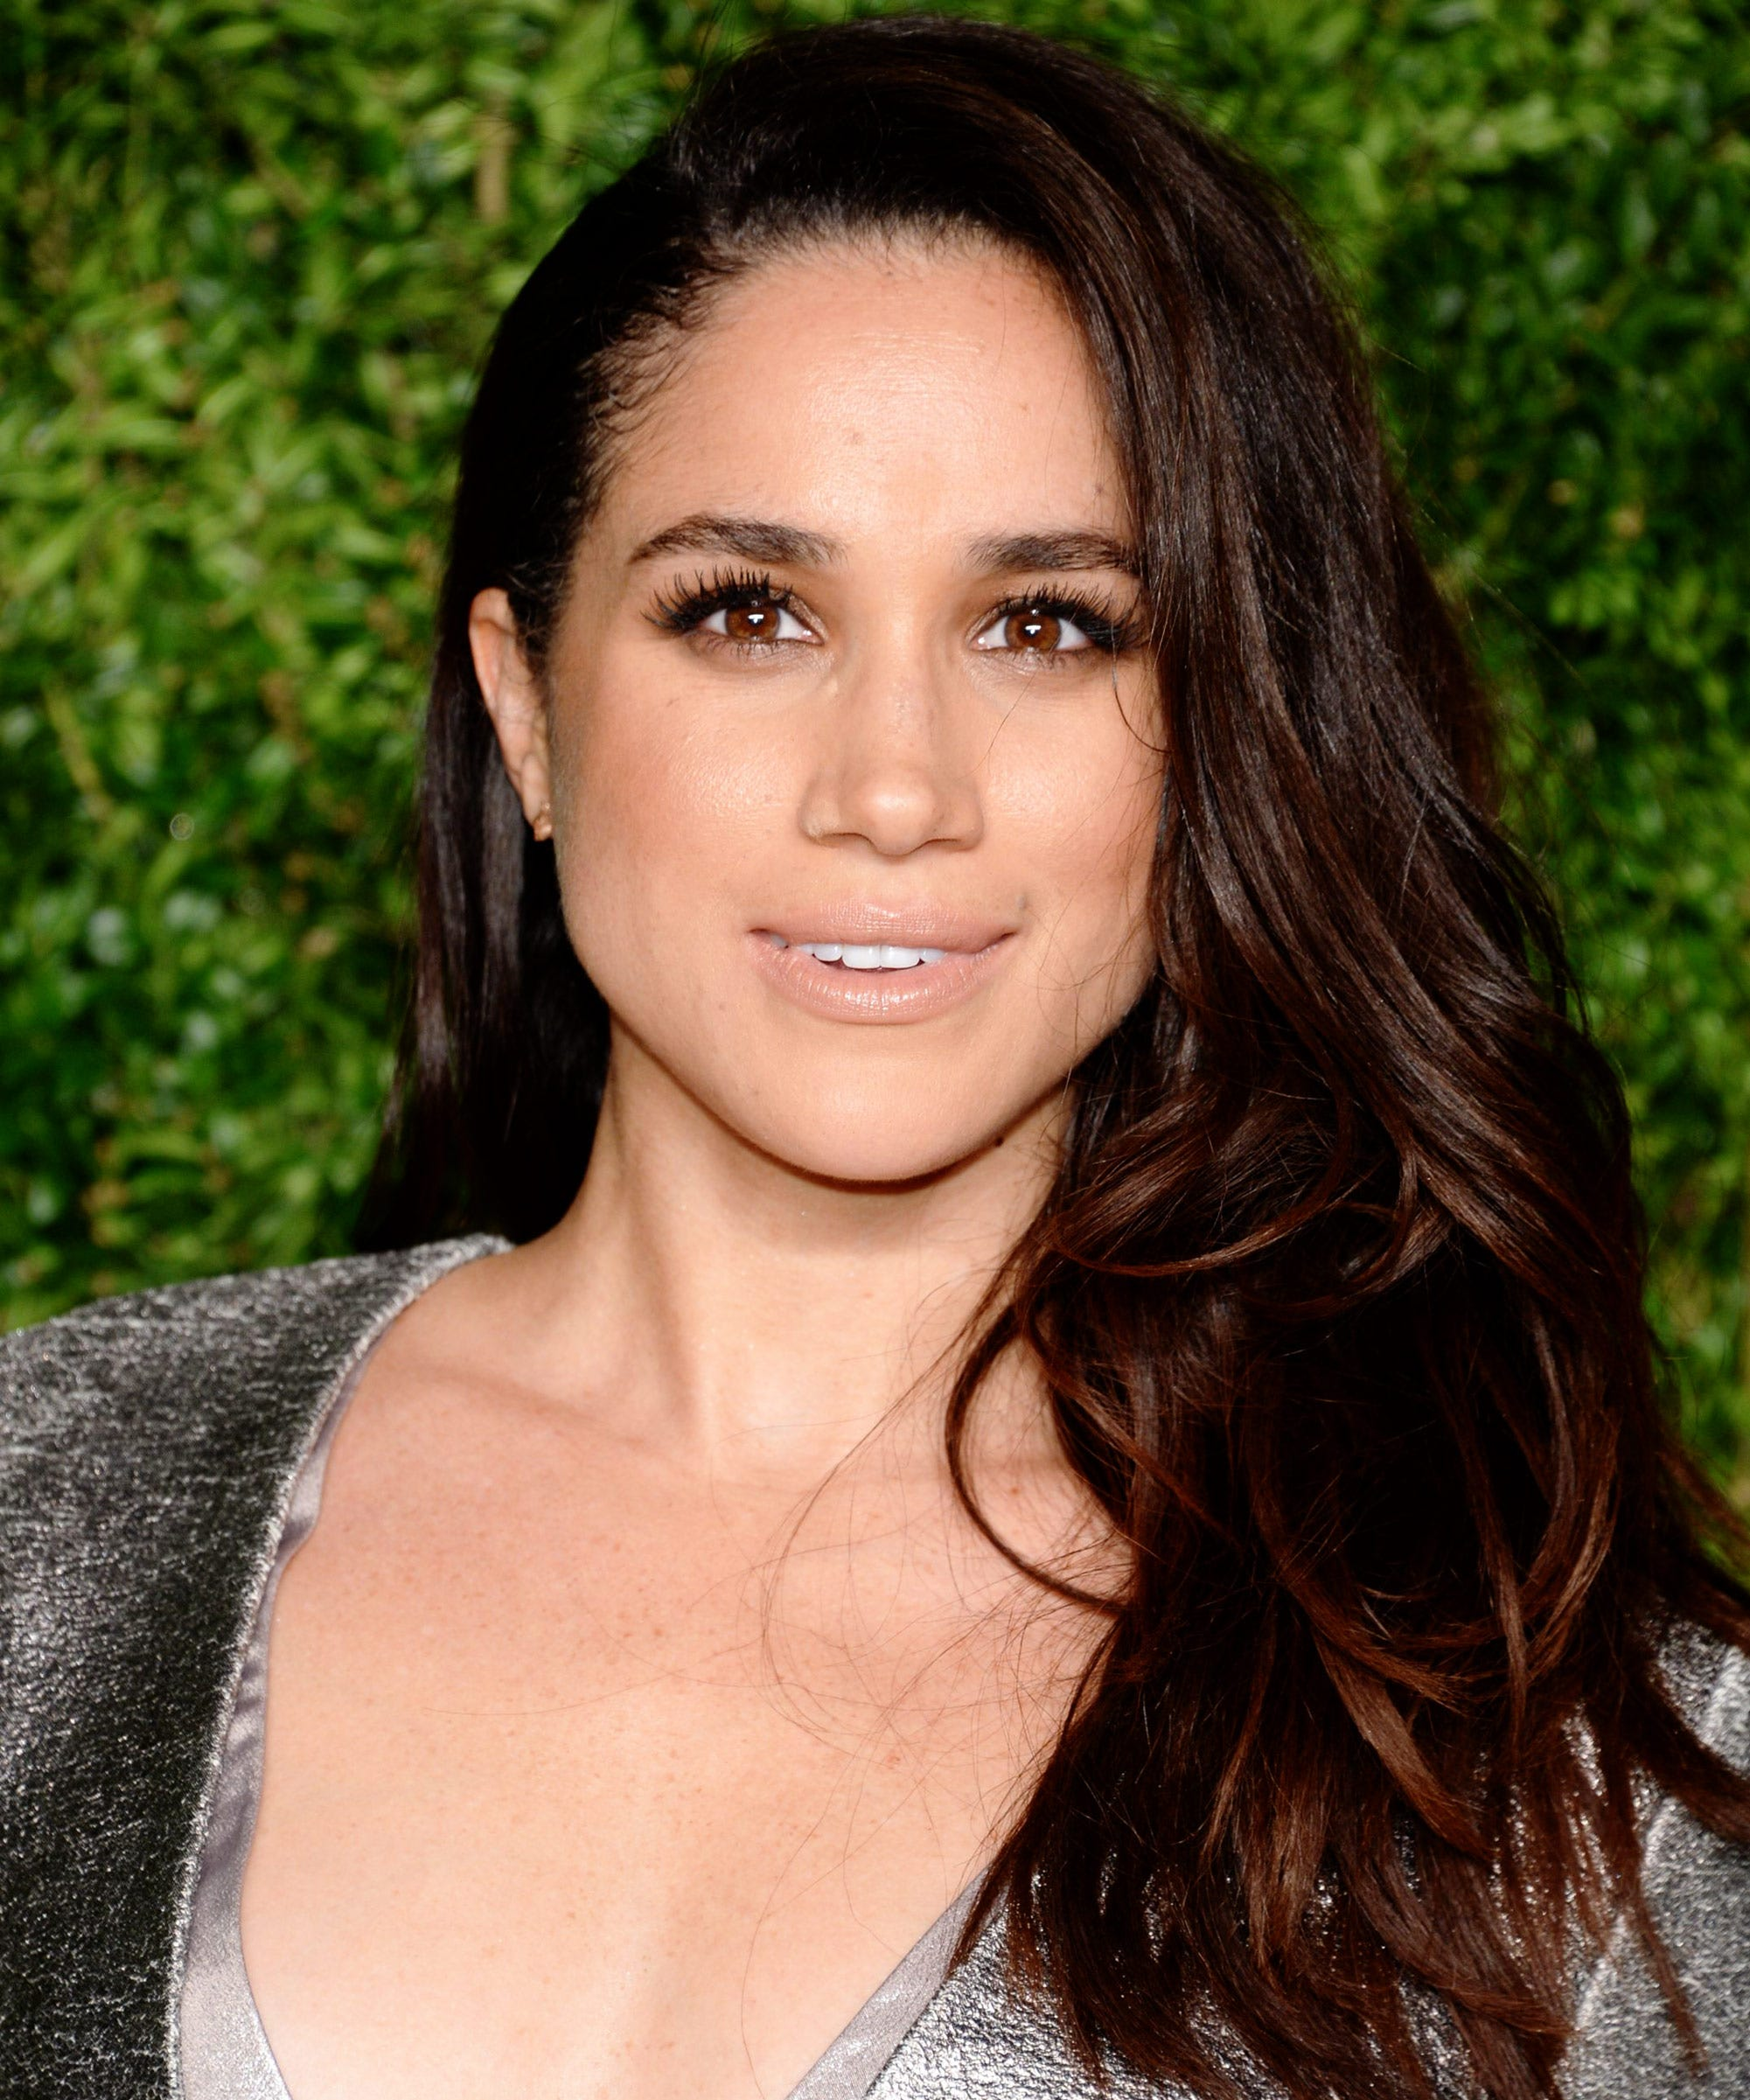 Meghan Markle Natural Curly Hair Twitter Photo